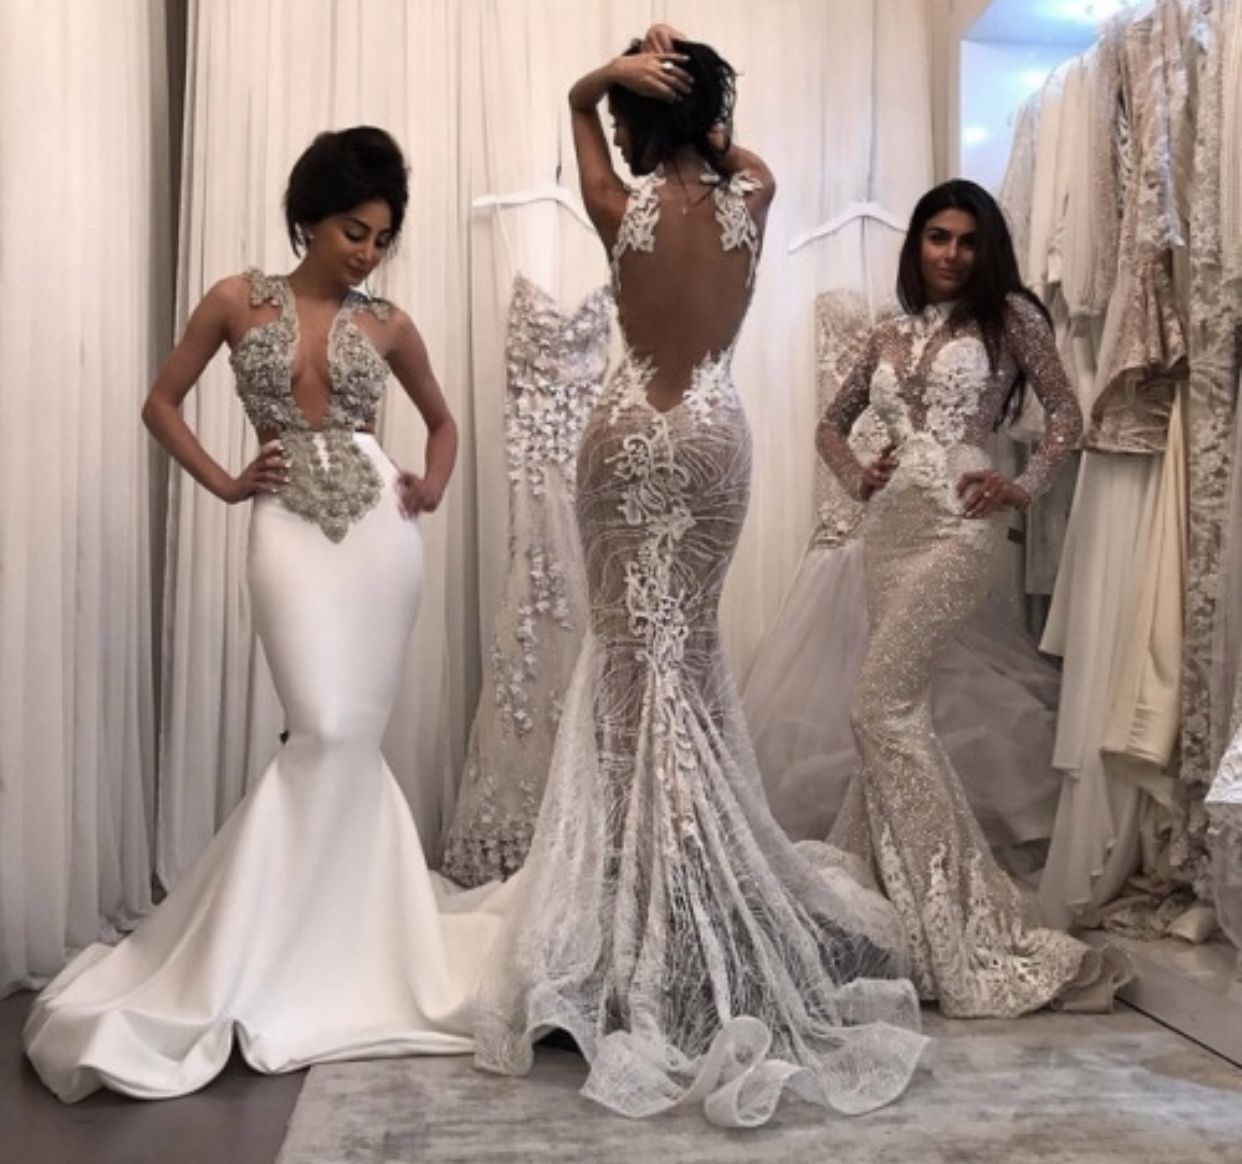 Wedding Dresses Wedding Dresses Dream Wedding Dresses Bridal Gowns